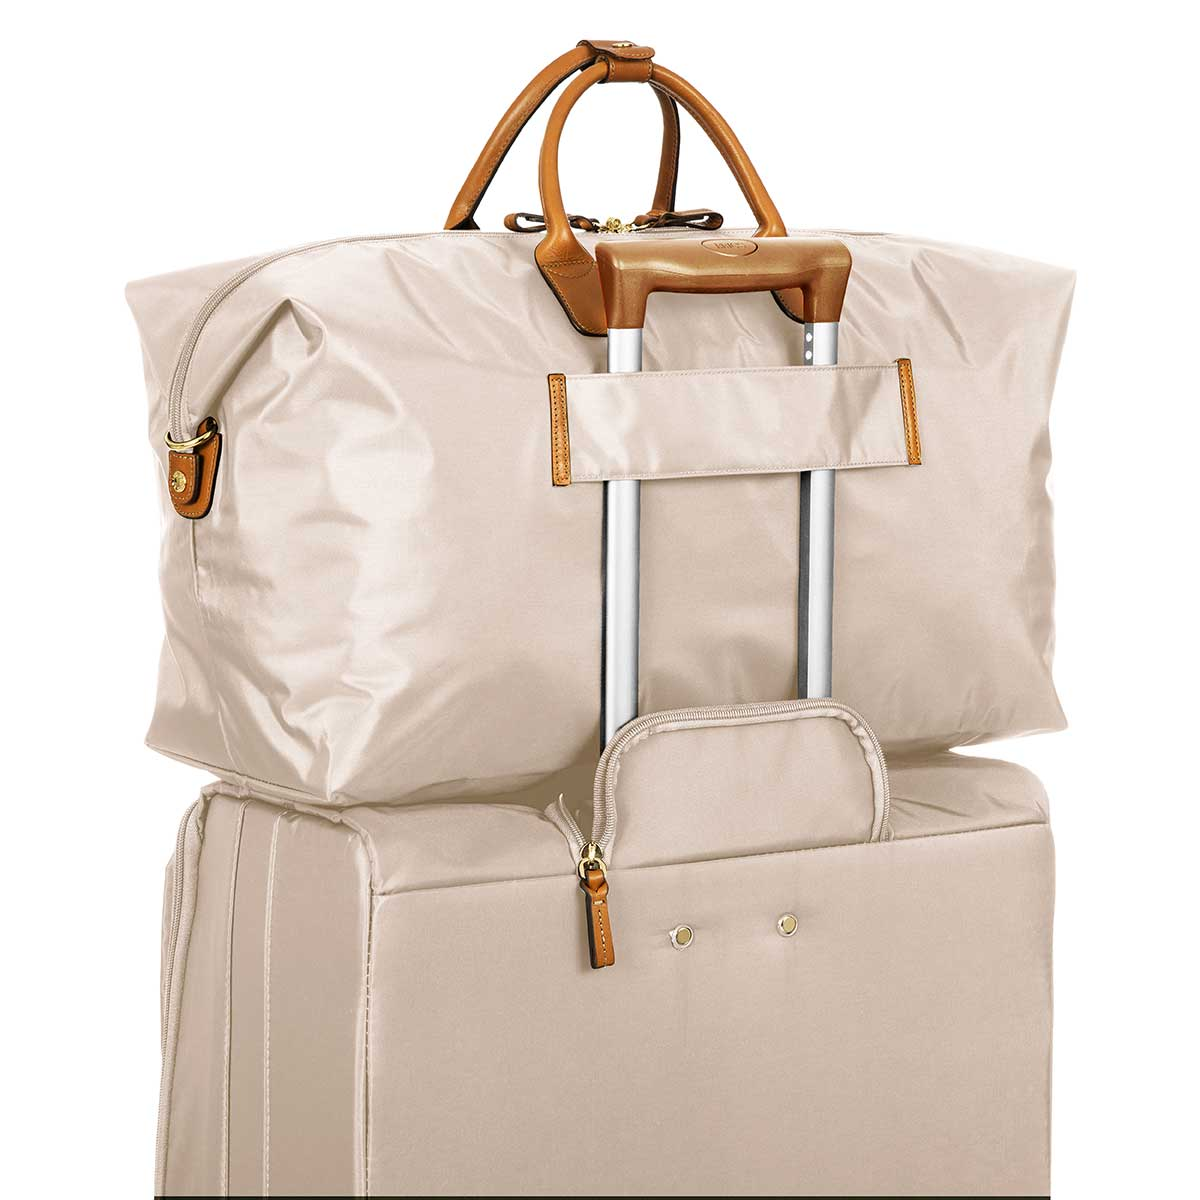 "X-Bag 22"" Deluxe Duffle Bag - Papyrus 